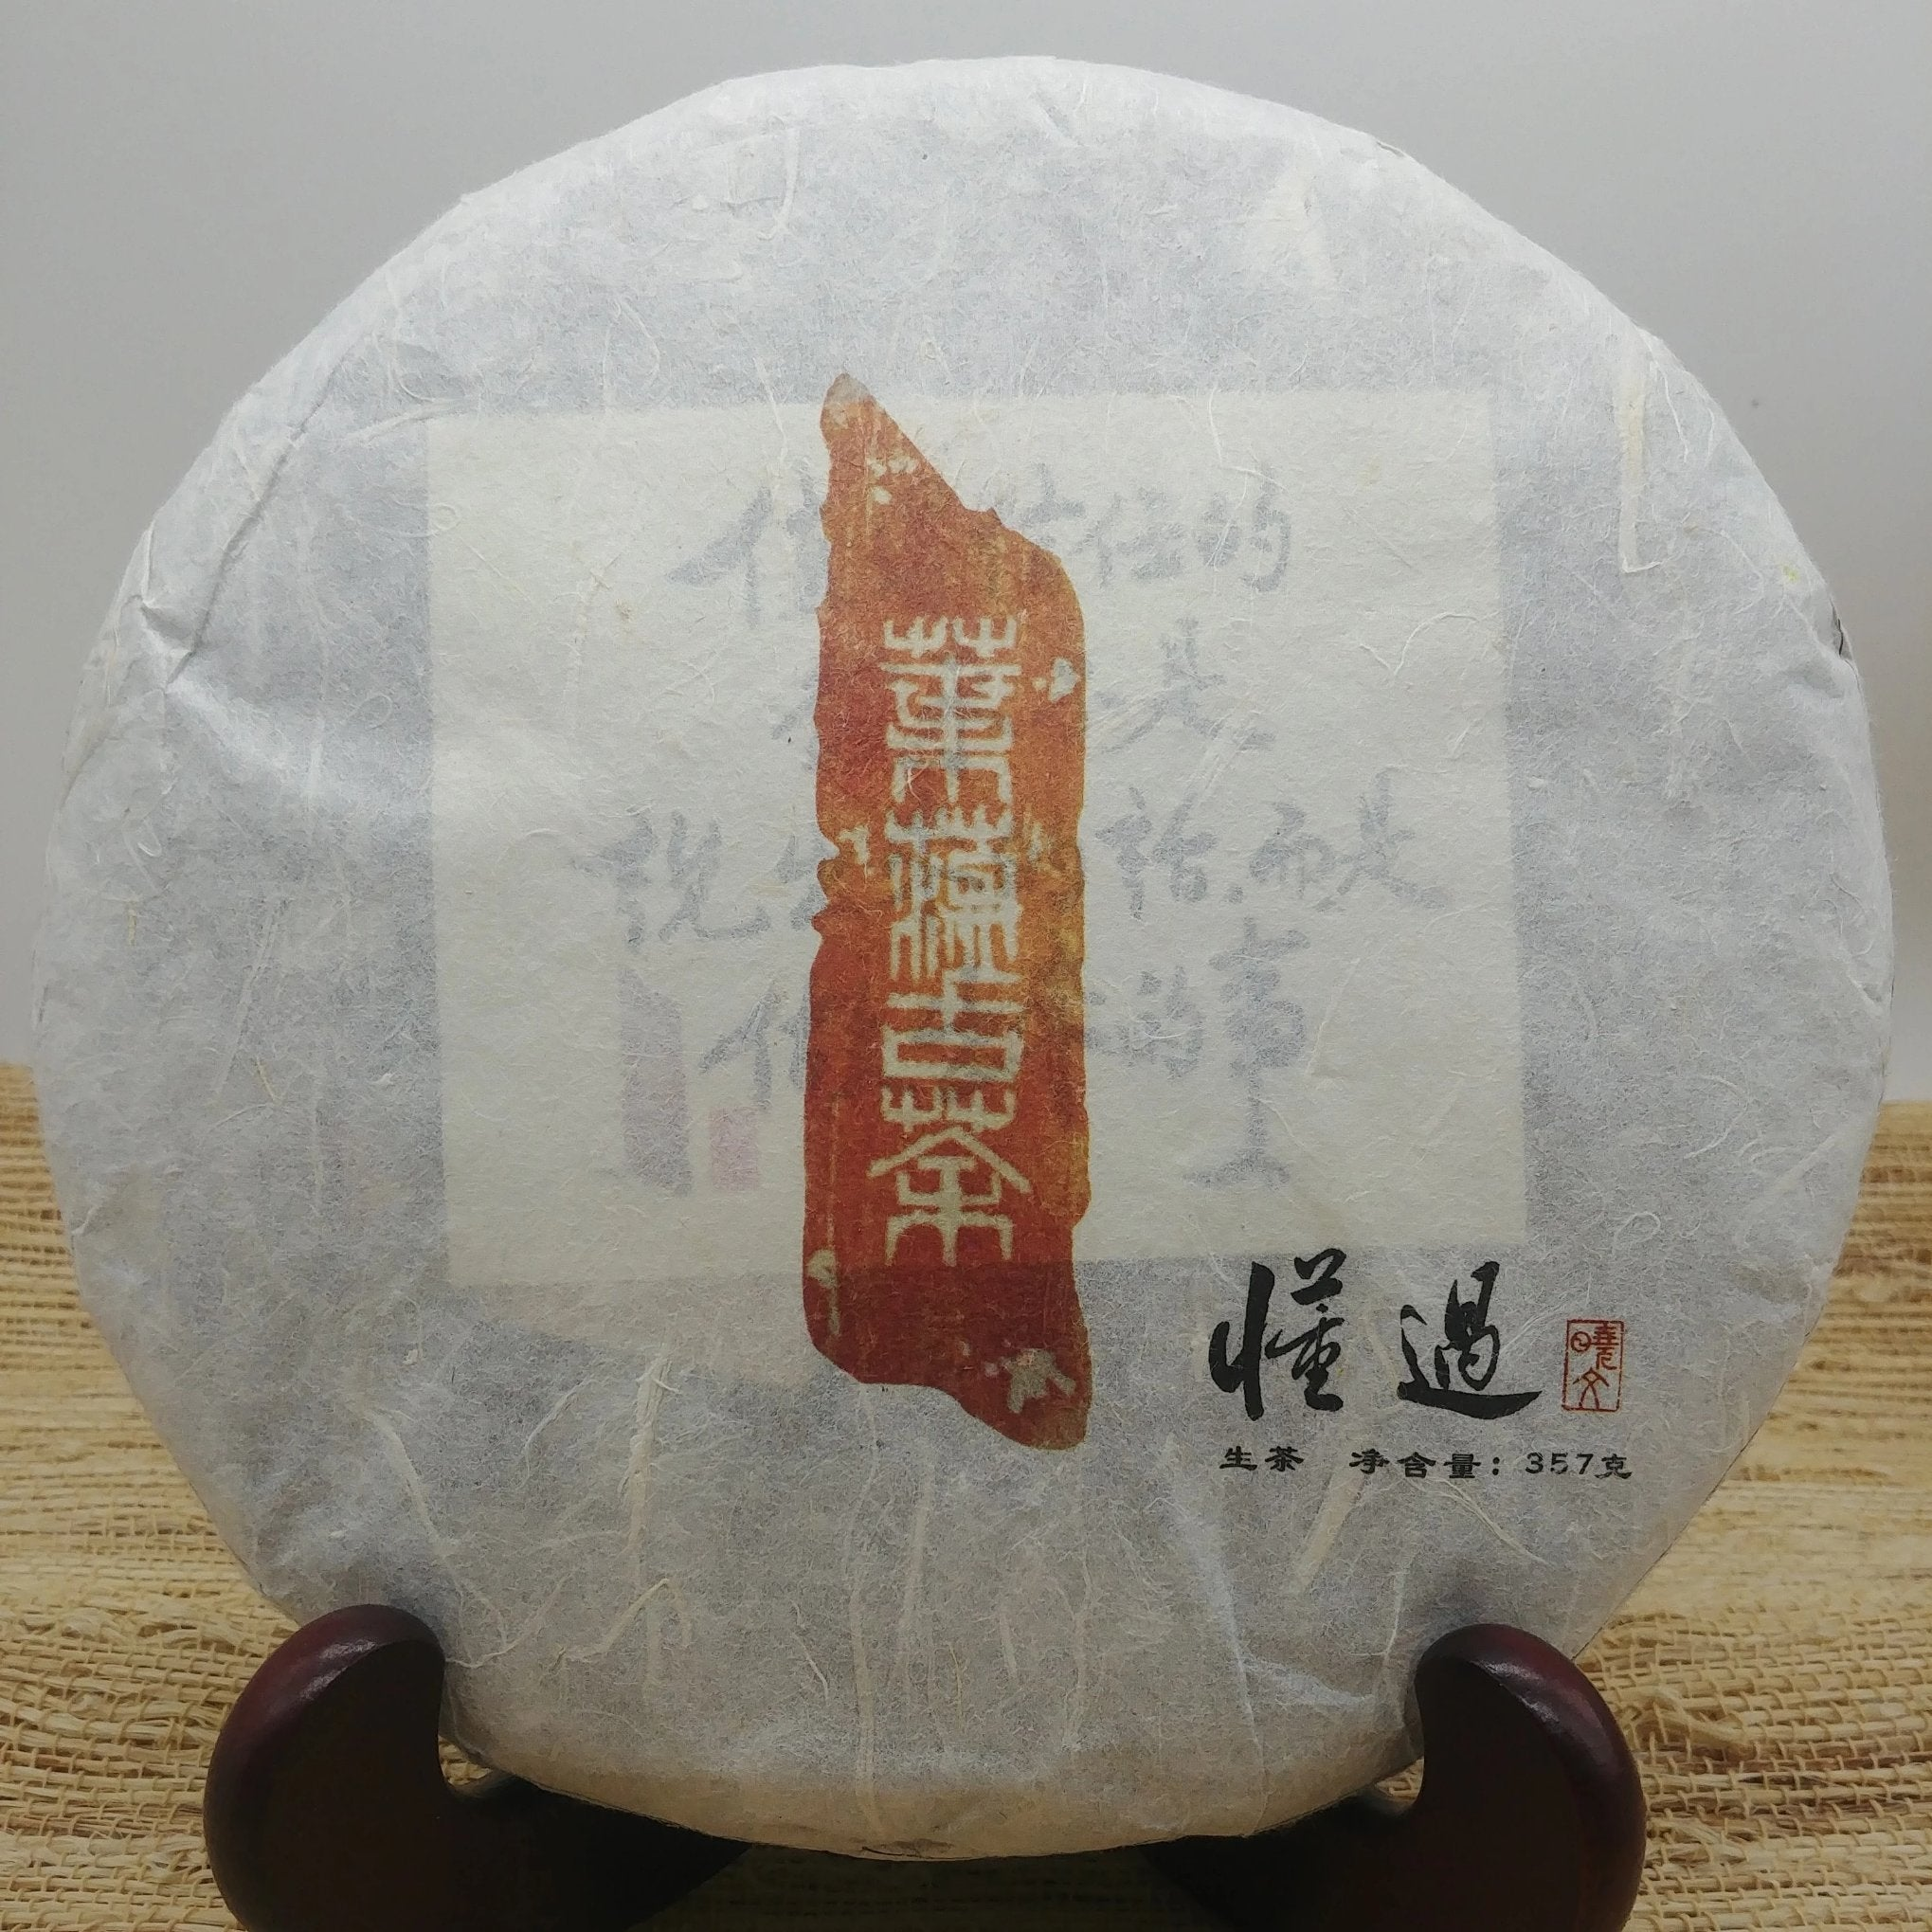 Dong Guo, Ancient Arbor Sheng Puerh, Spring 2017